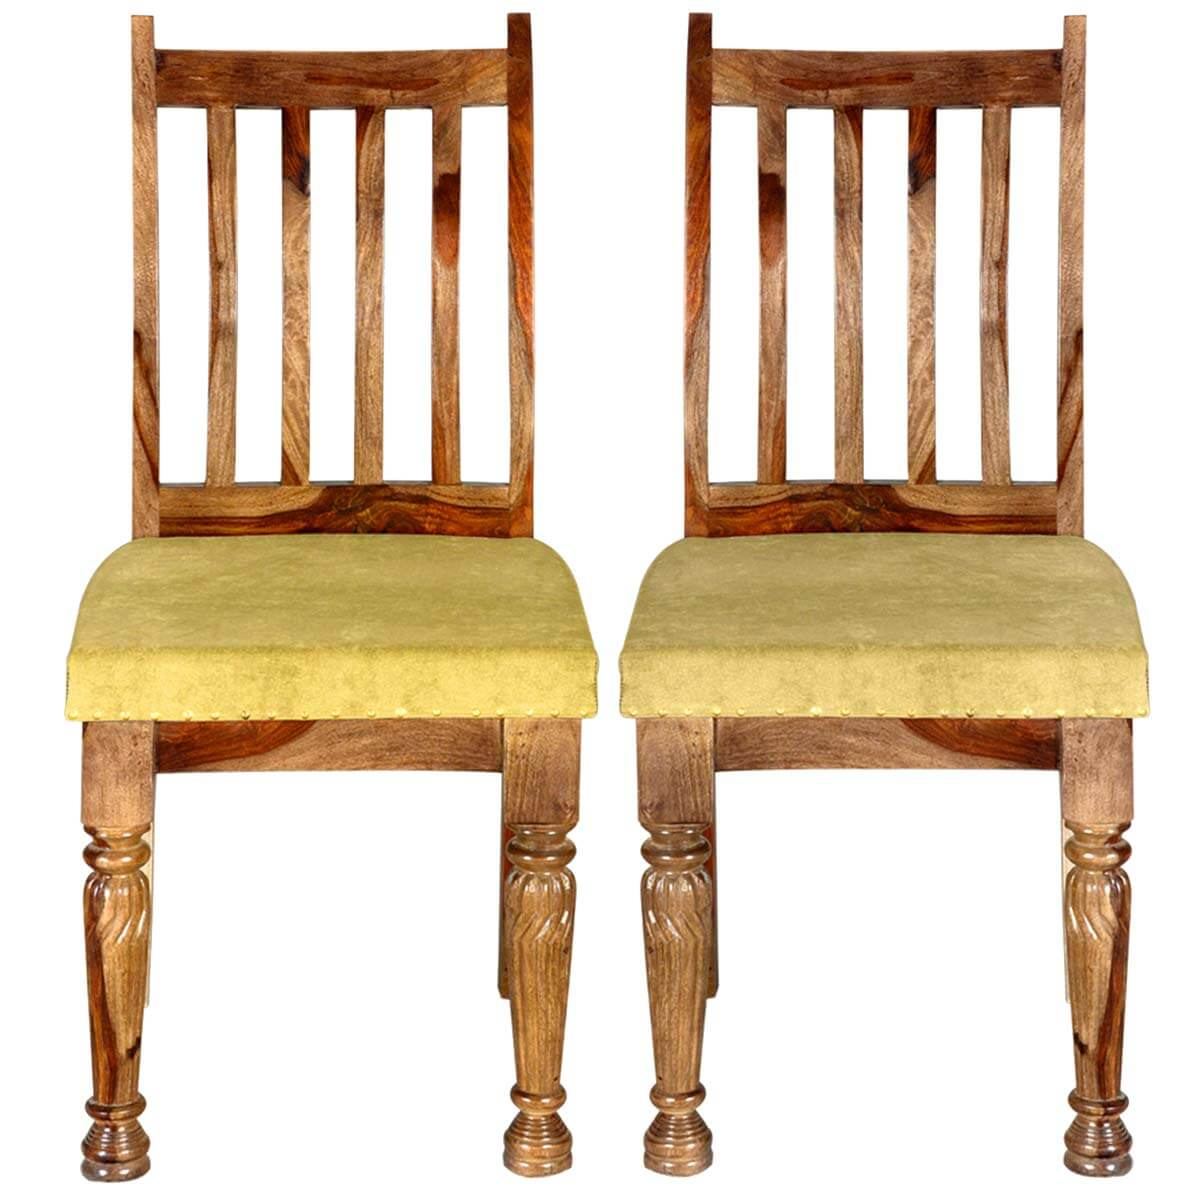 Dallas Ranch Indian Rosewood Upholstered School Back Chair Set